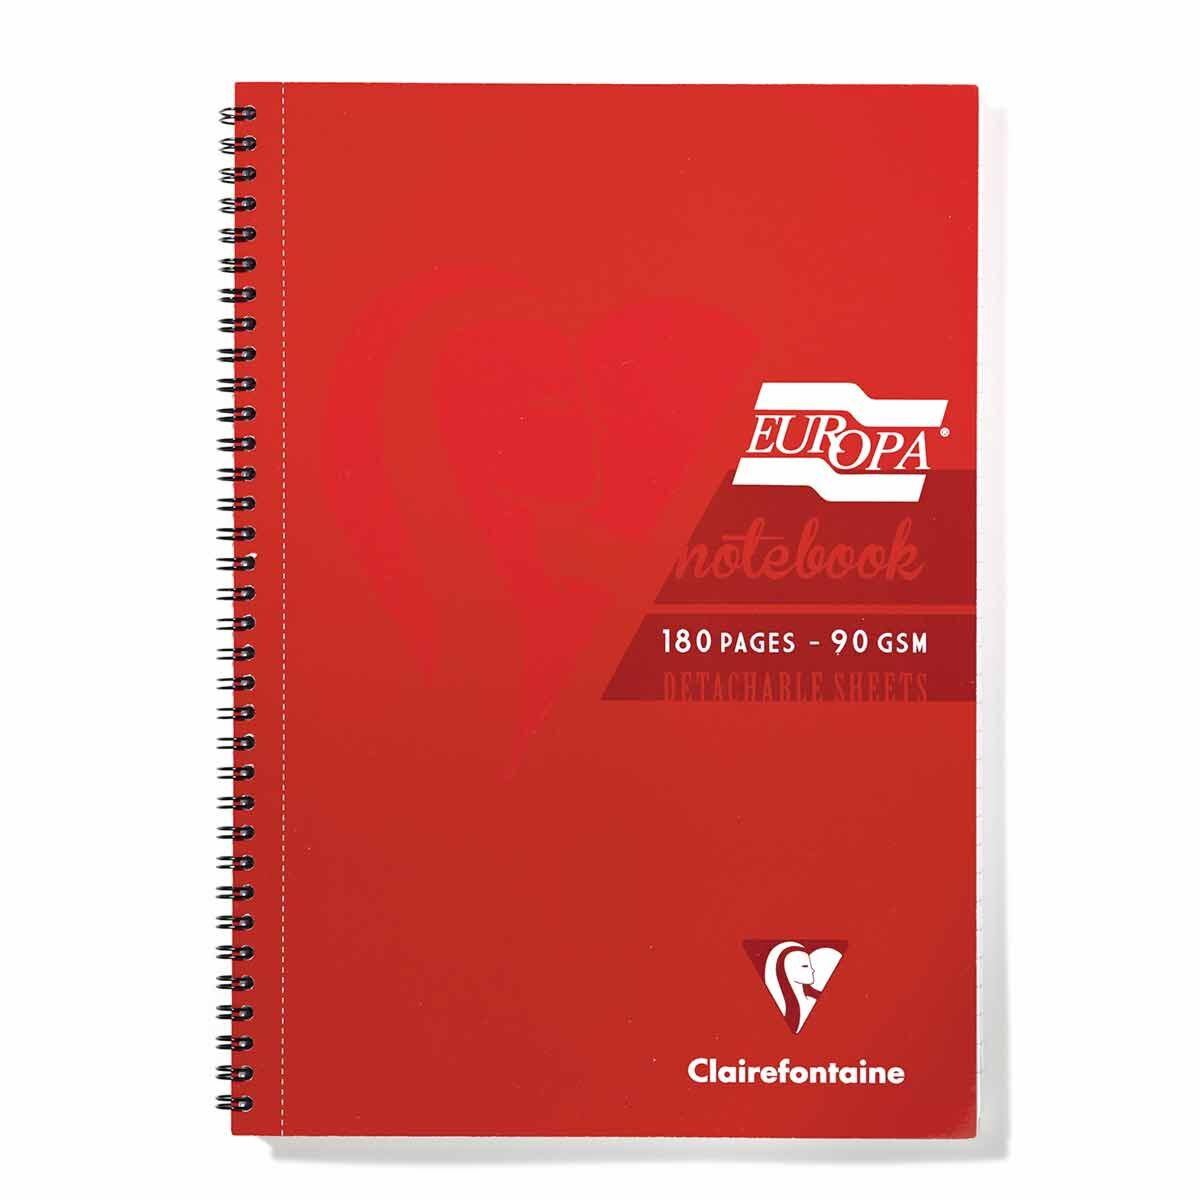 Europa Notebook A4 Red